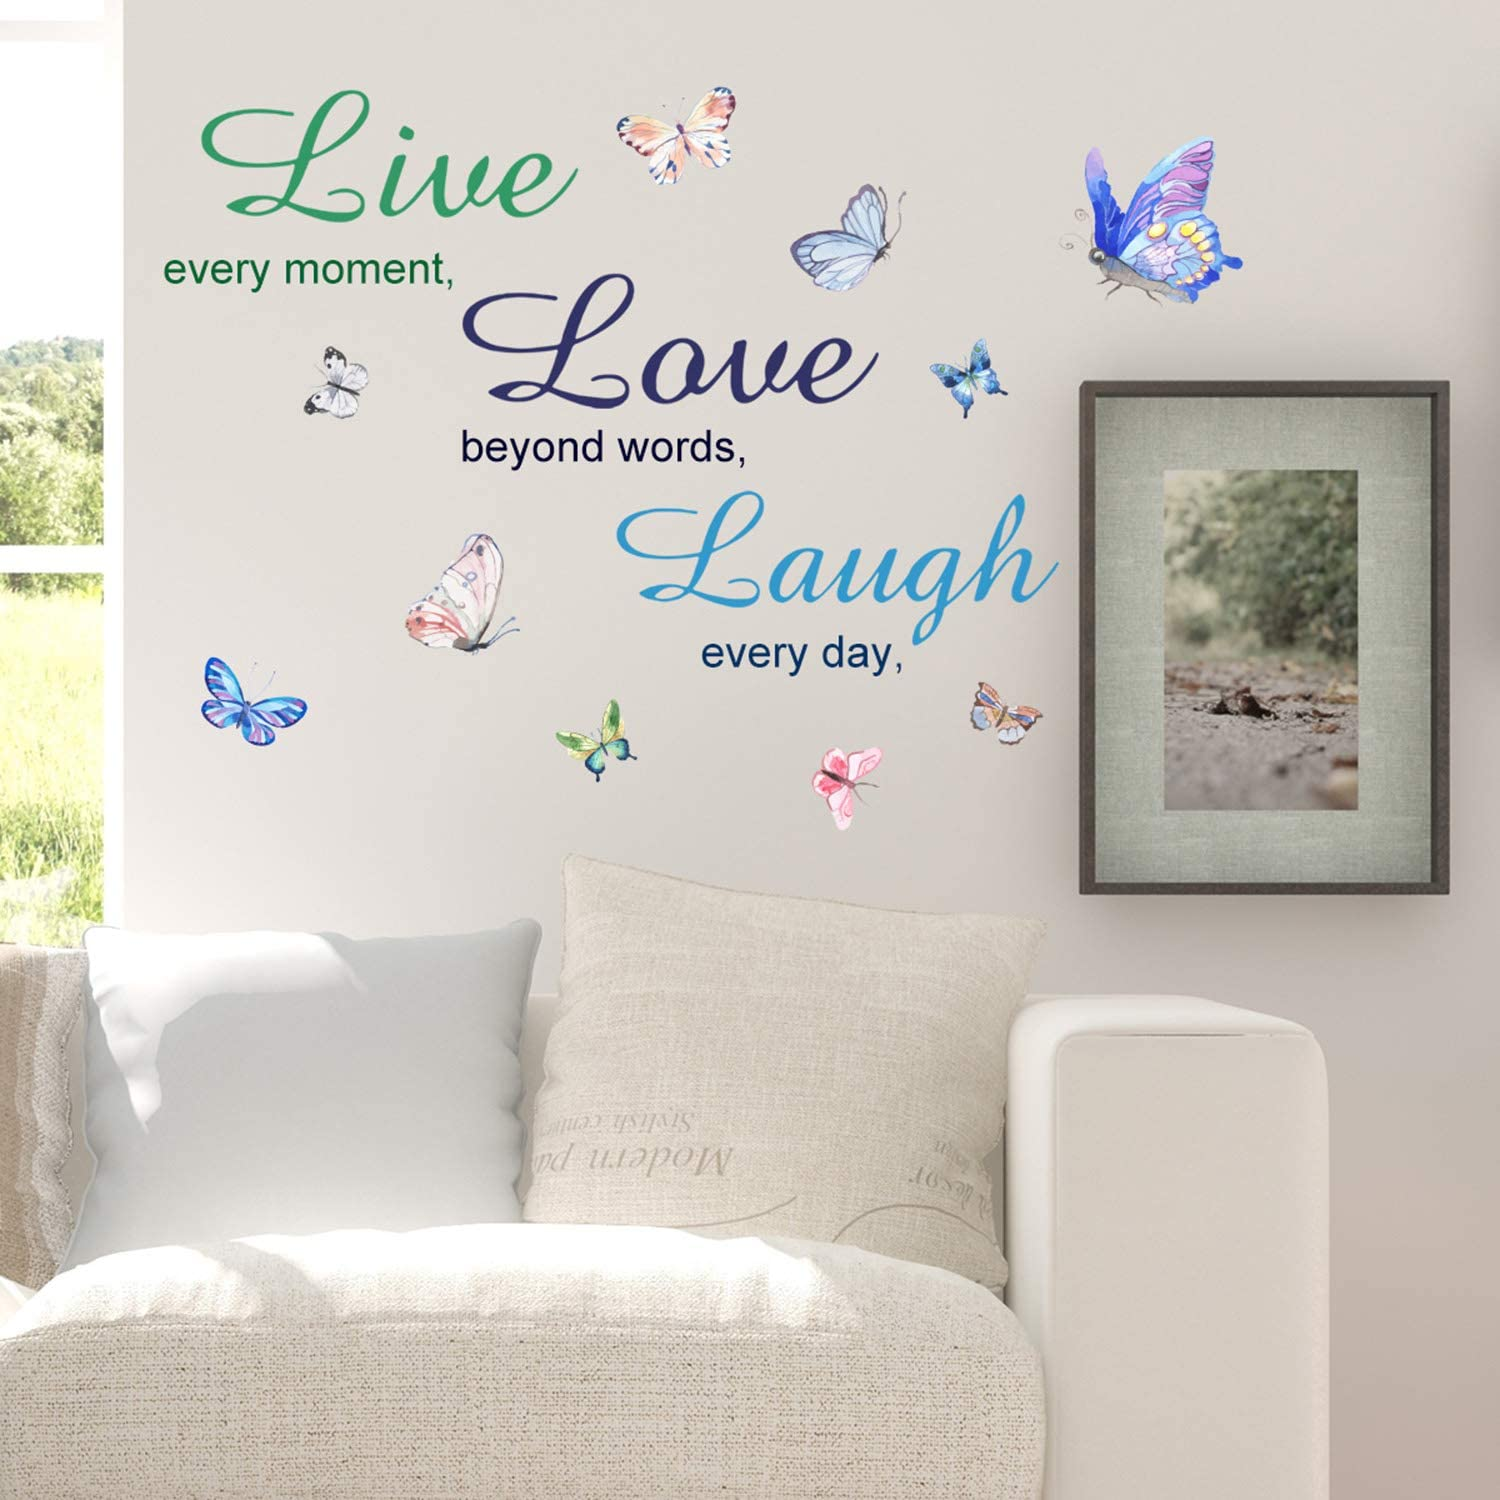 Finduat Live Laugh Love Butterfly Wall Decal Art, Vinyl Live Laugh Love Wall Decor Stickers Motivational Quotes for Bedroom, Removable Wall Sign Mural DIY Home Decorations Decals